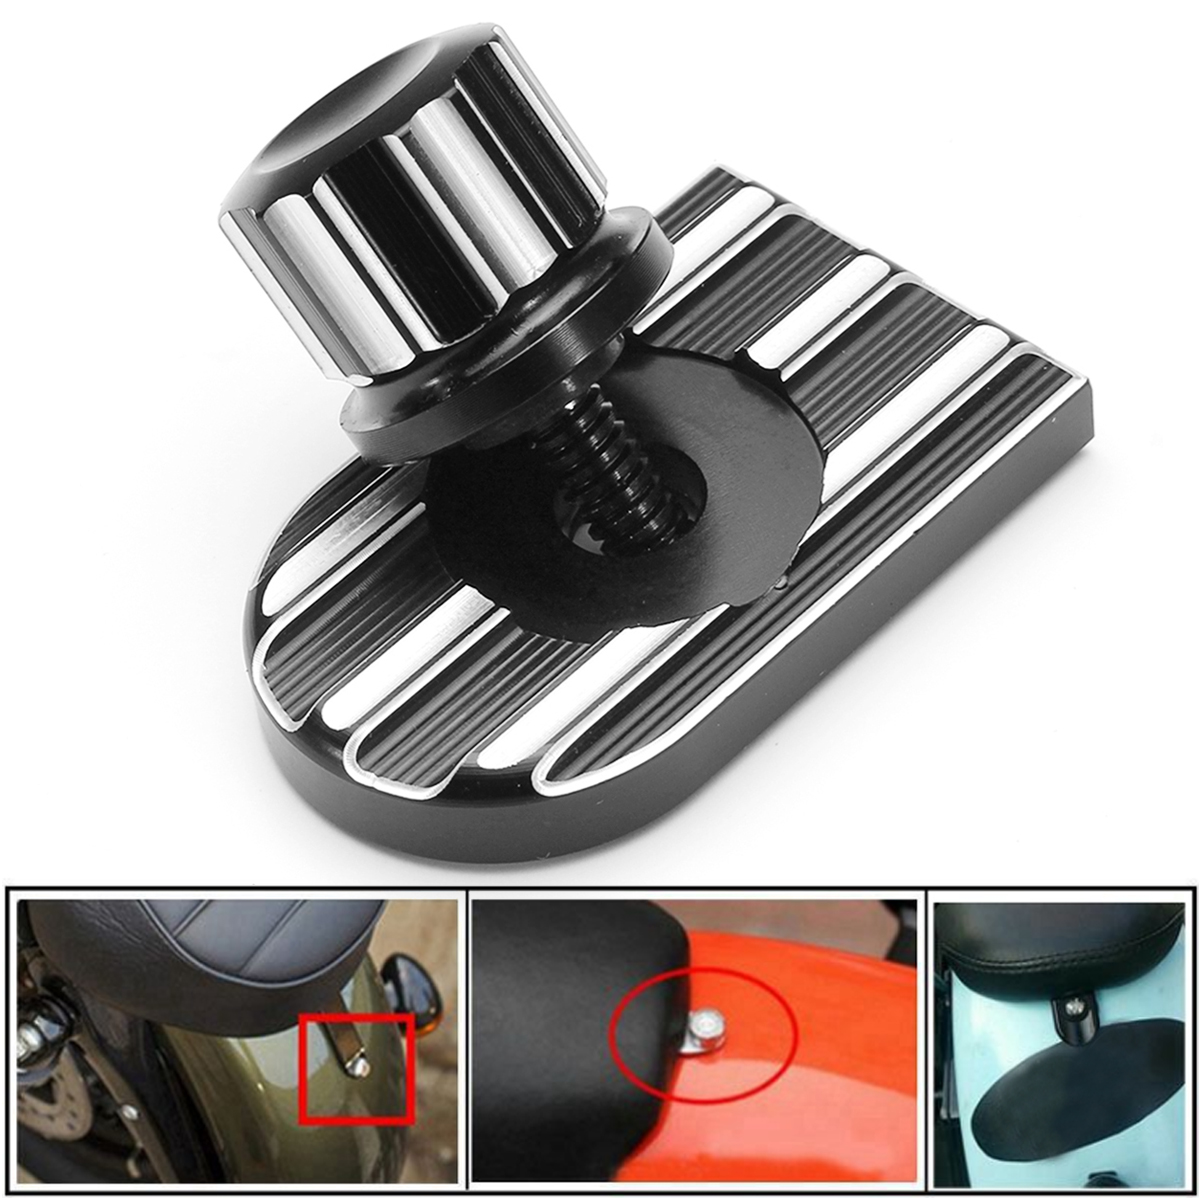 New Motorcycle Rear for Fender Seat Bolt Tab Screw Mount Knob Cover Kit Aluminum CNC for Harley Touring Dyna 1996-2017New Motorcycle Rear for Fender Seat Bolt Tab Screw Mount Knob Cover Kit Aluminum CNC for Harley Touring Dyna 1996-2017